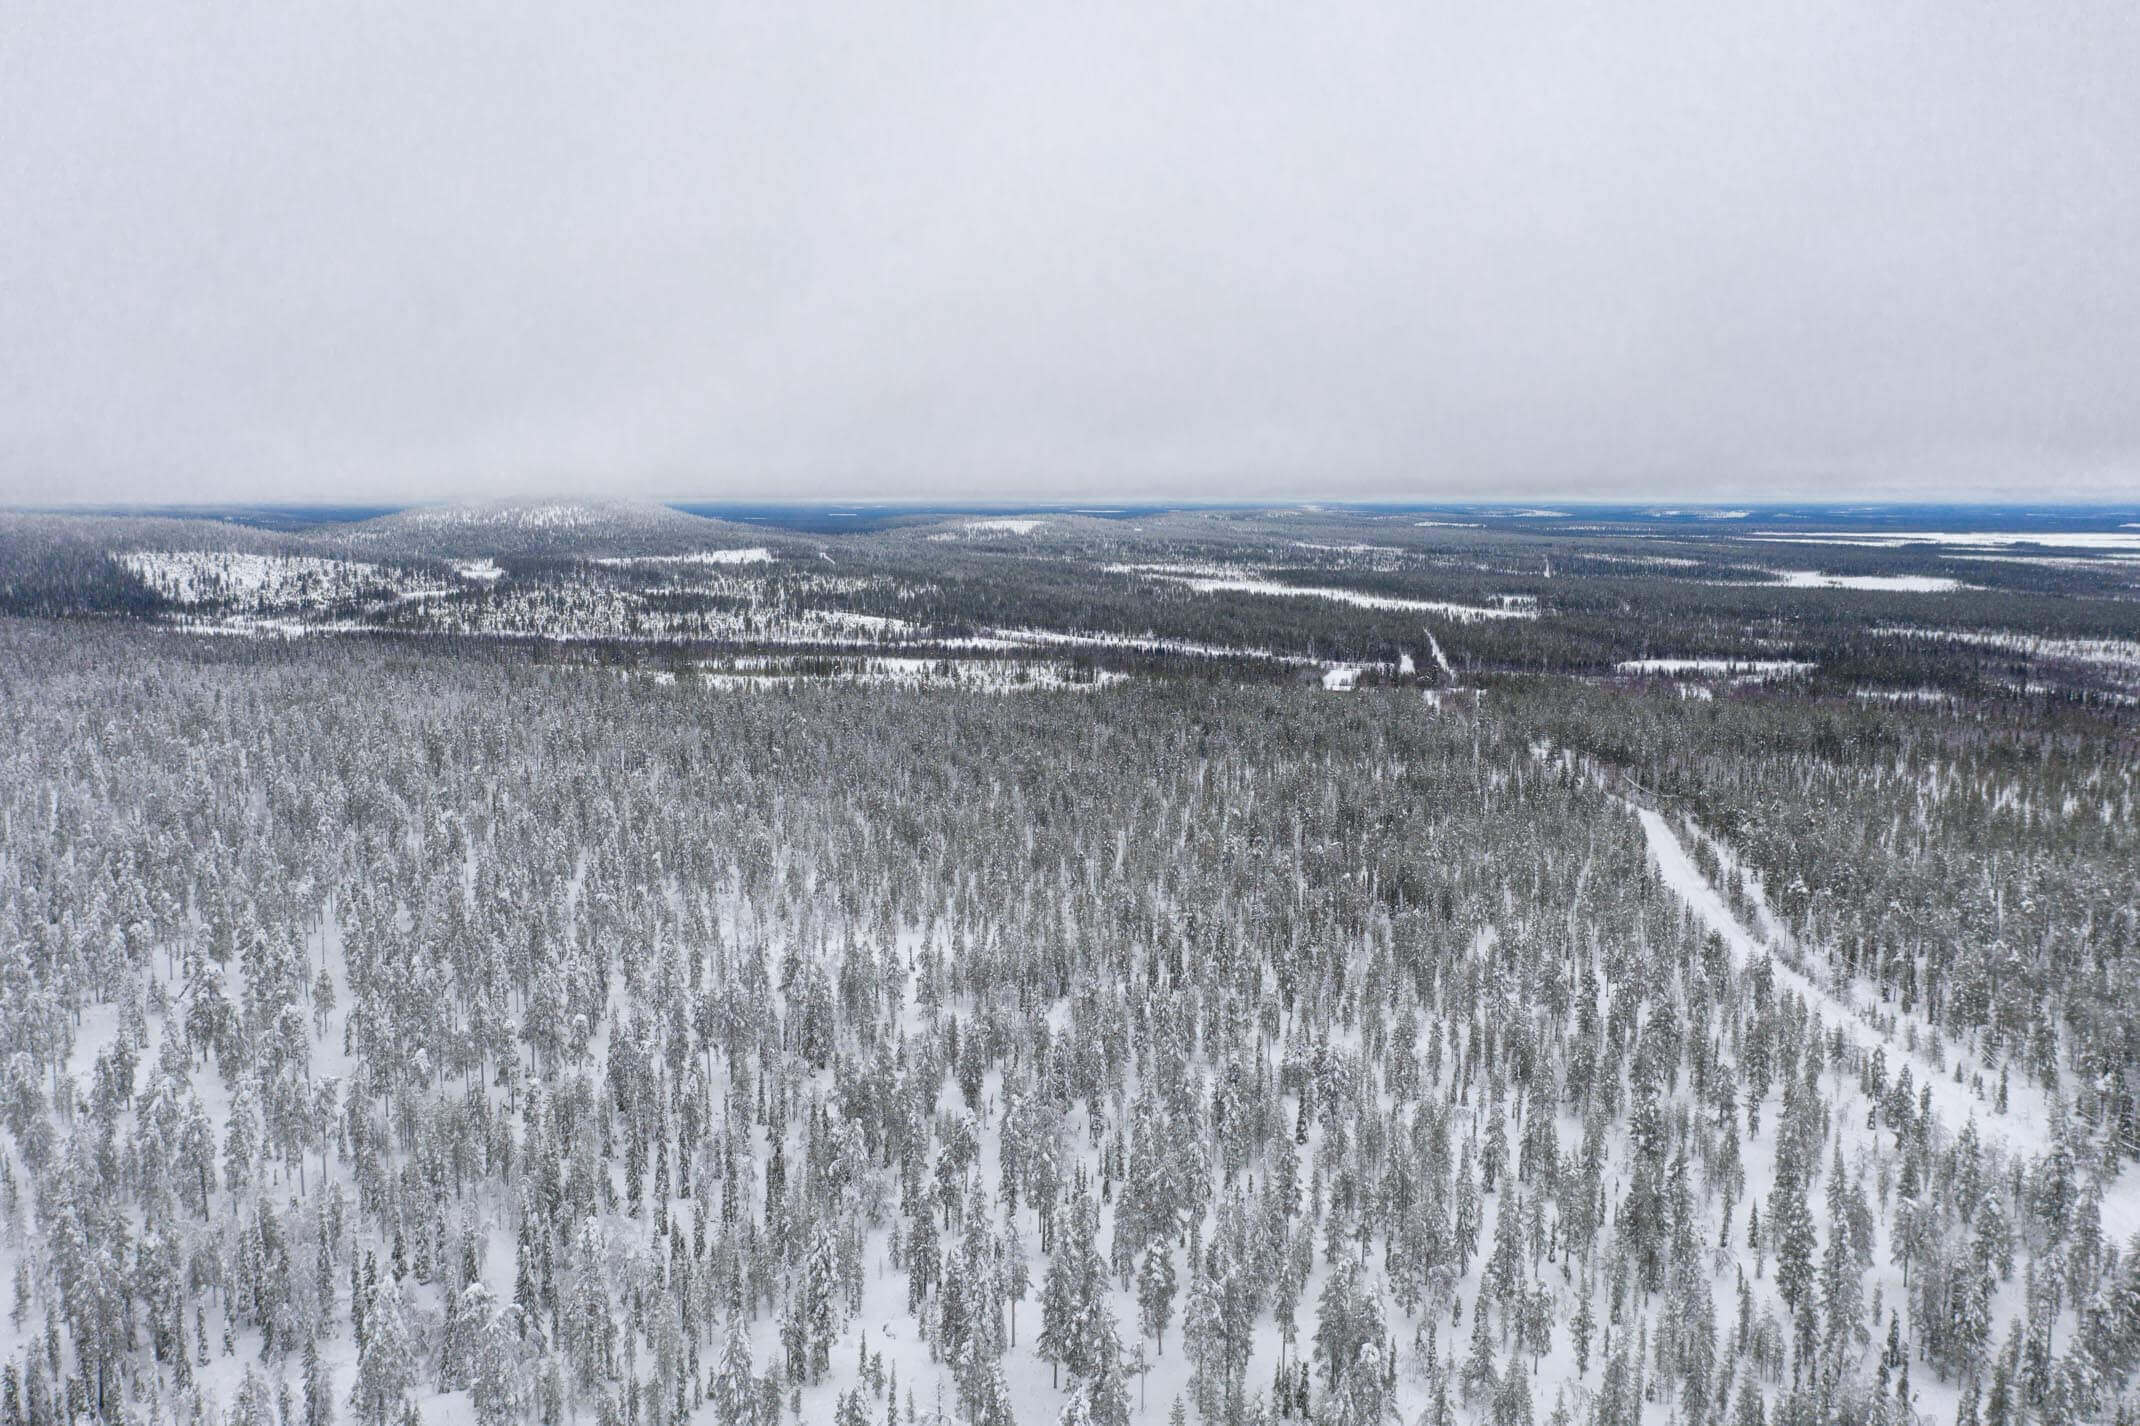 A winter travel guide to Levi, Finland